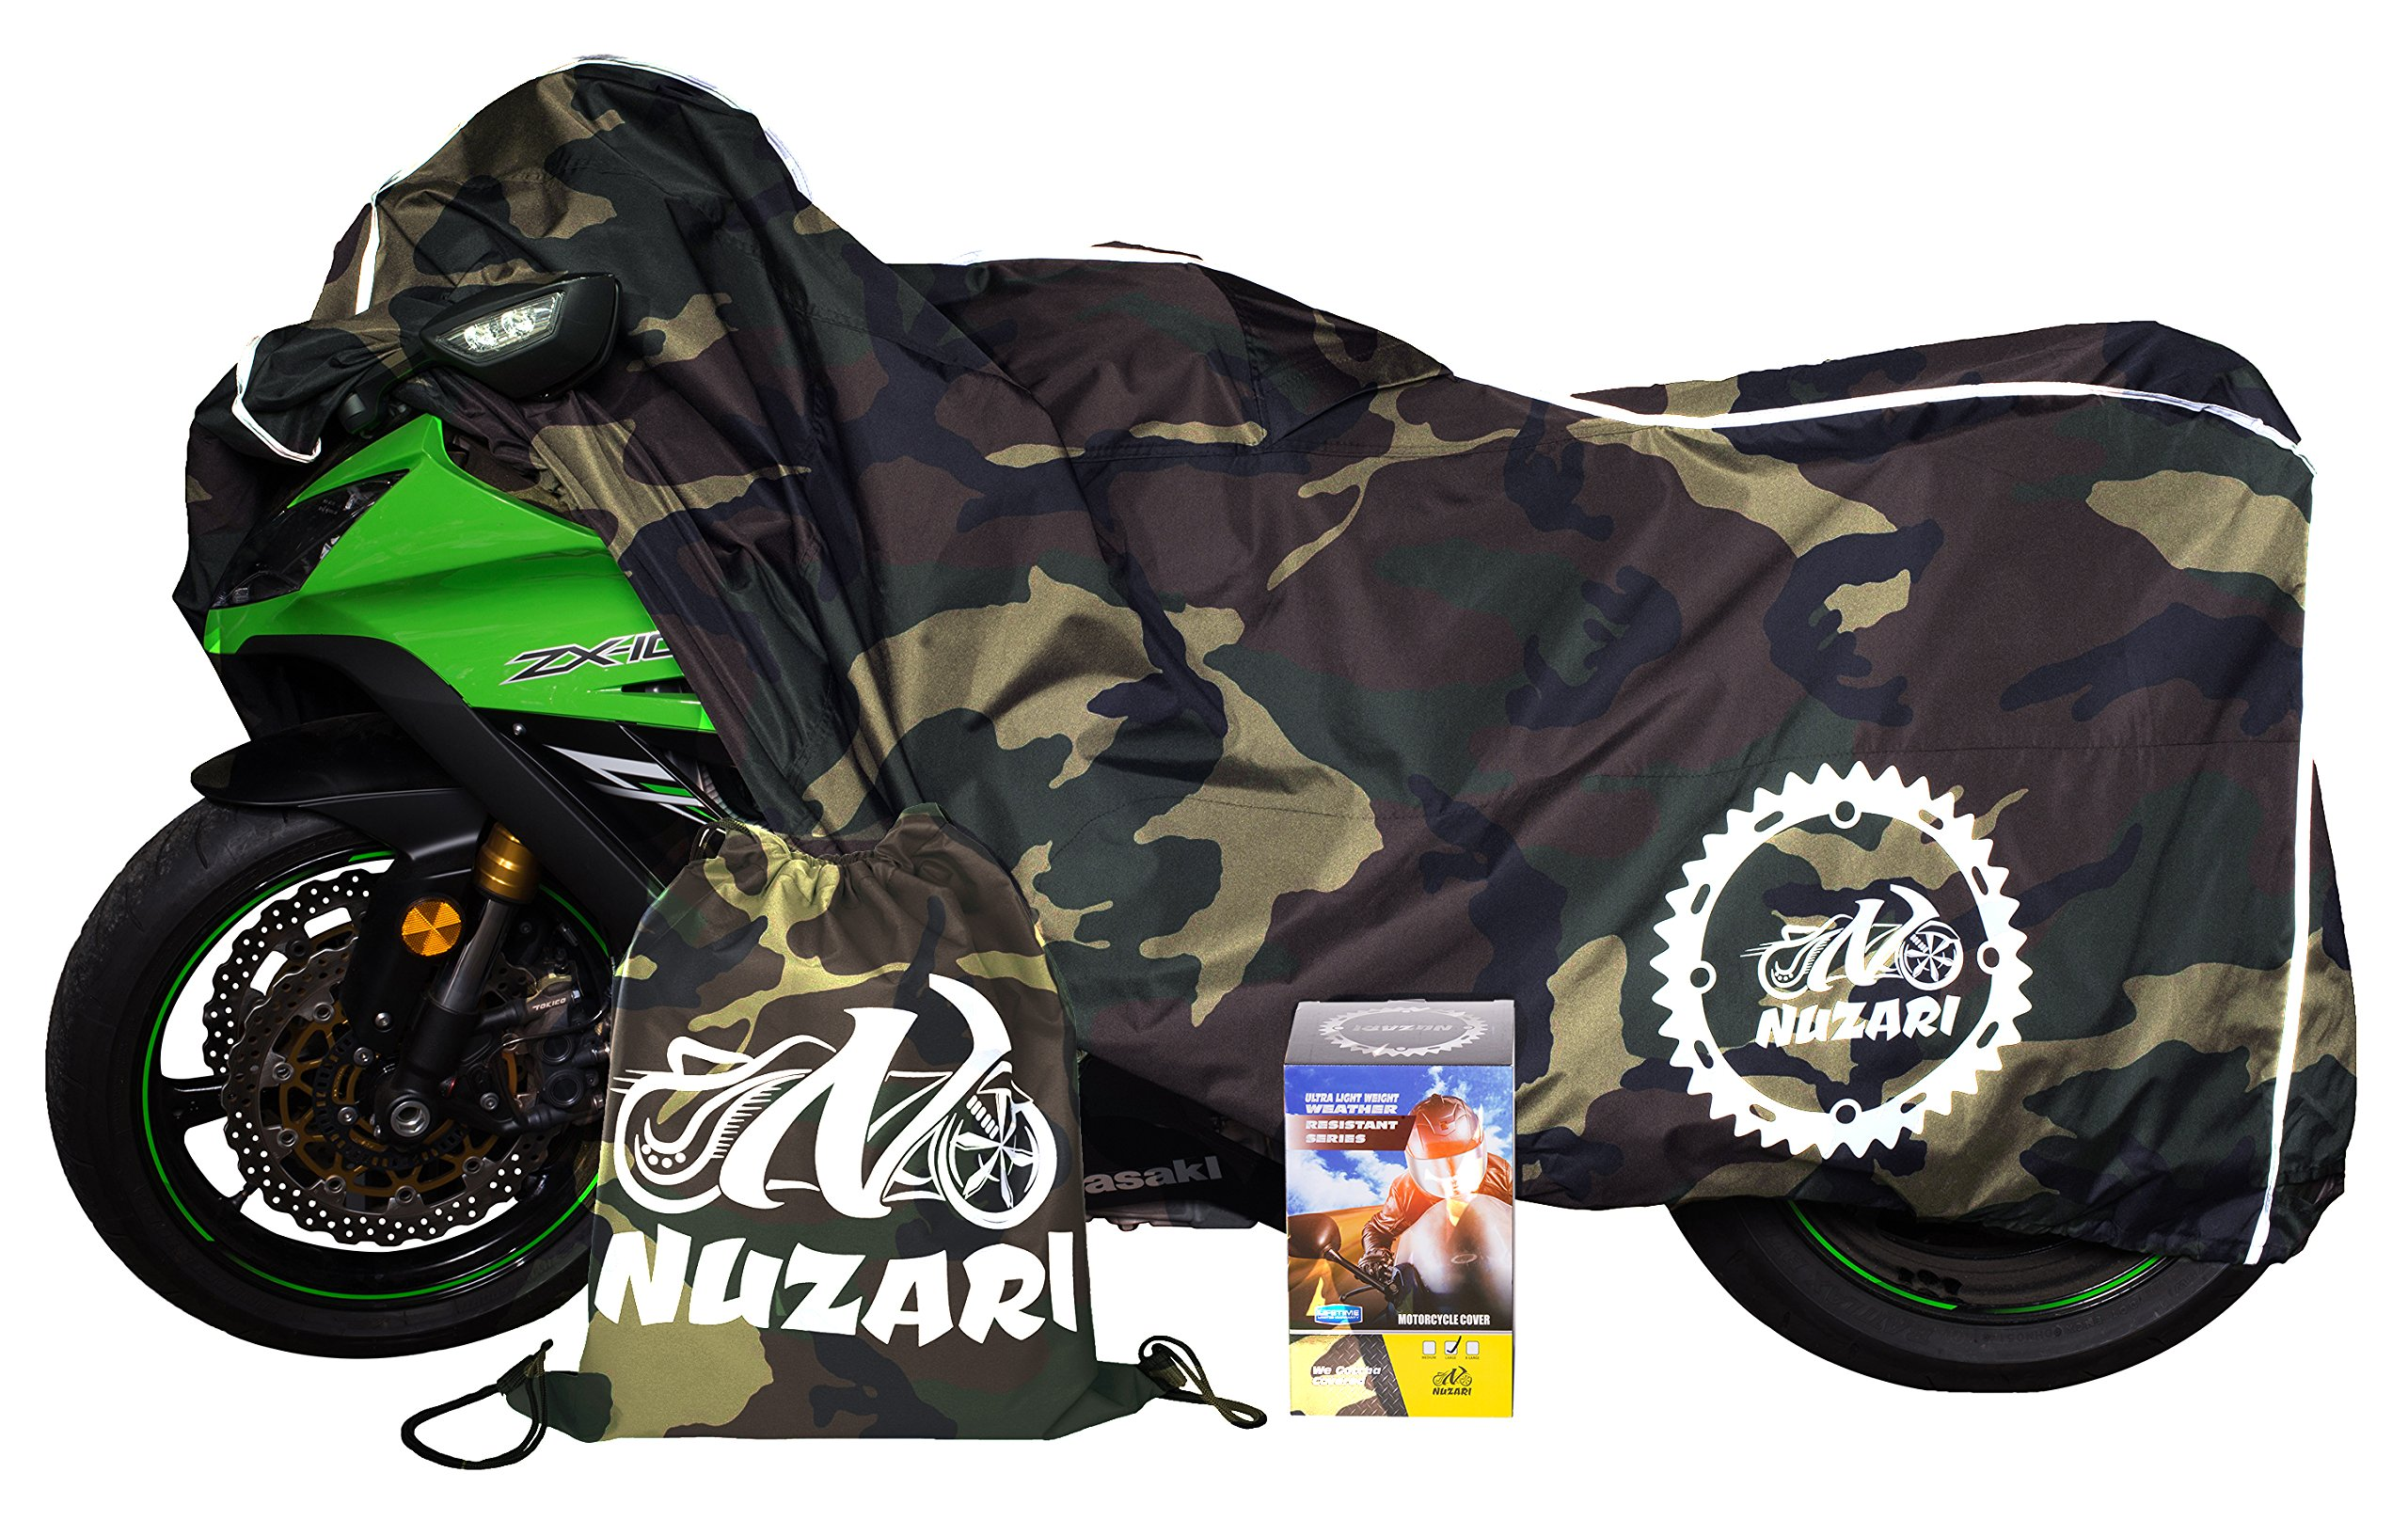 Premium Weather Resistant Covers Waterproof Polyester w/Soft Screen & Heat Resistant Shields.Motorcycle Cover has Lockable fabric, Durable & Long Lasting.Sportbikes & Cruisers (XX-Large, Camouflage) by Nuzari (Image #3)